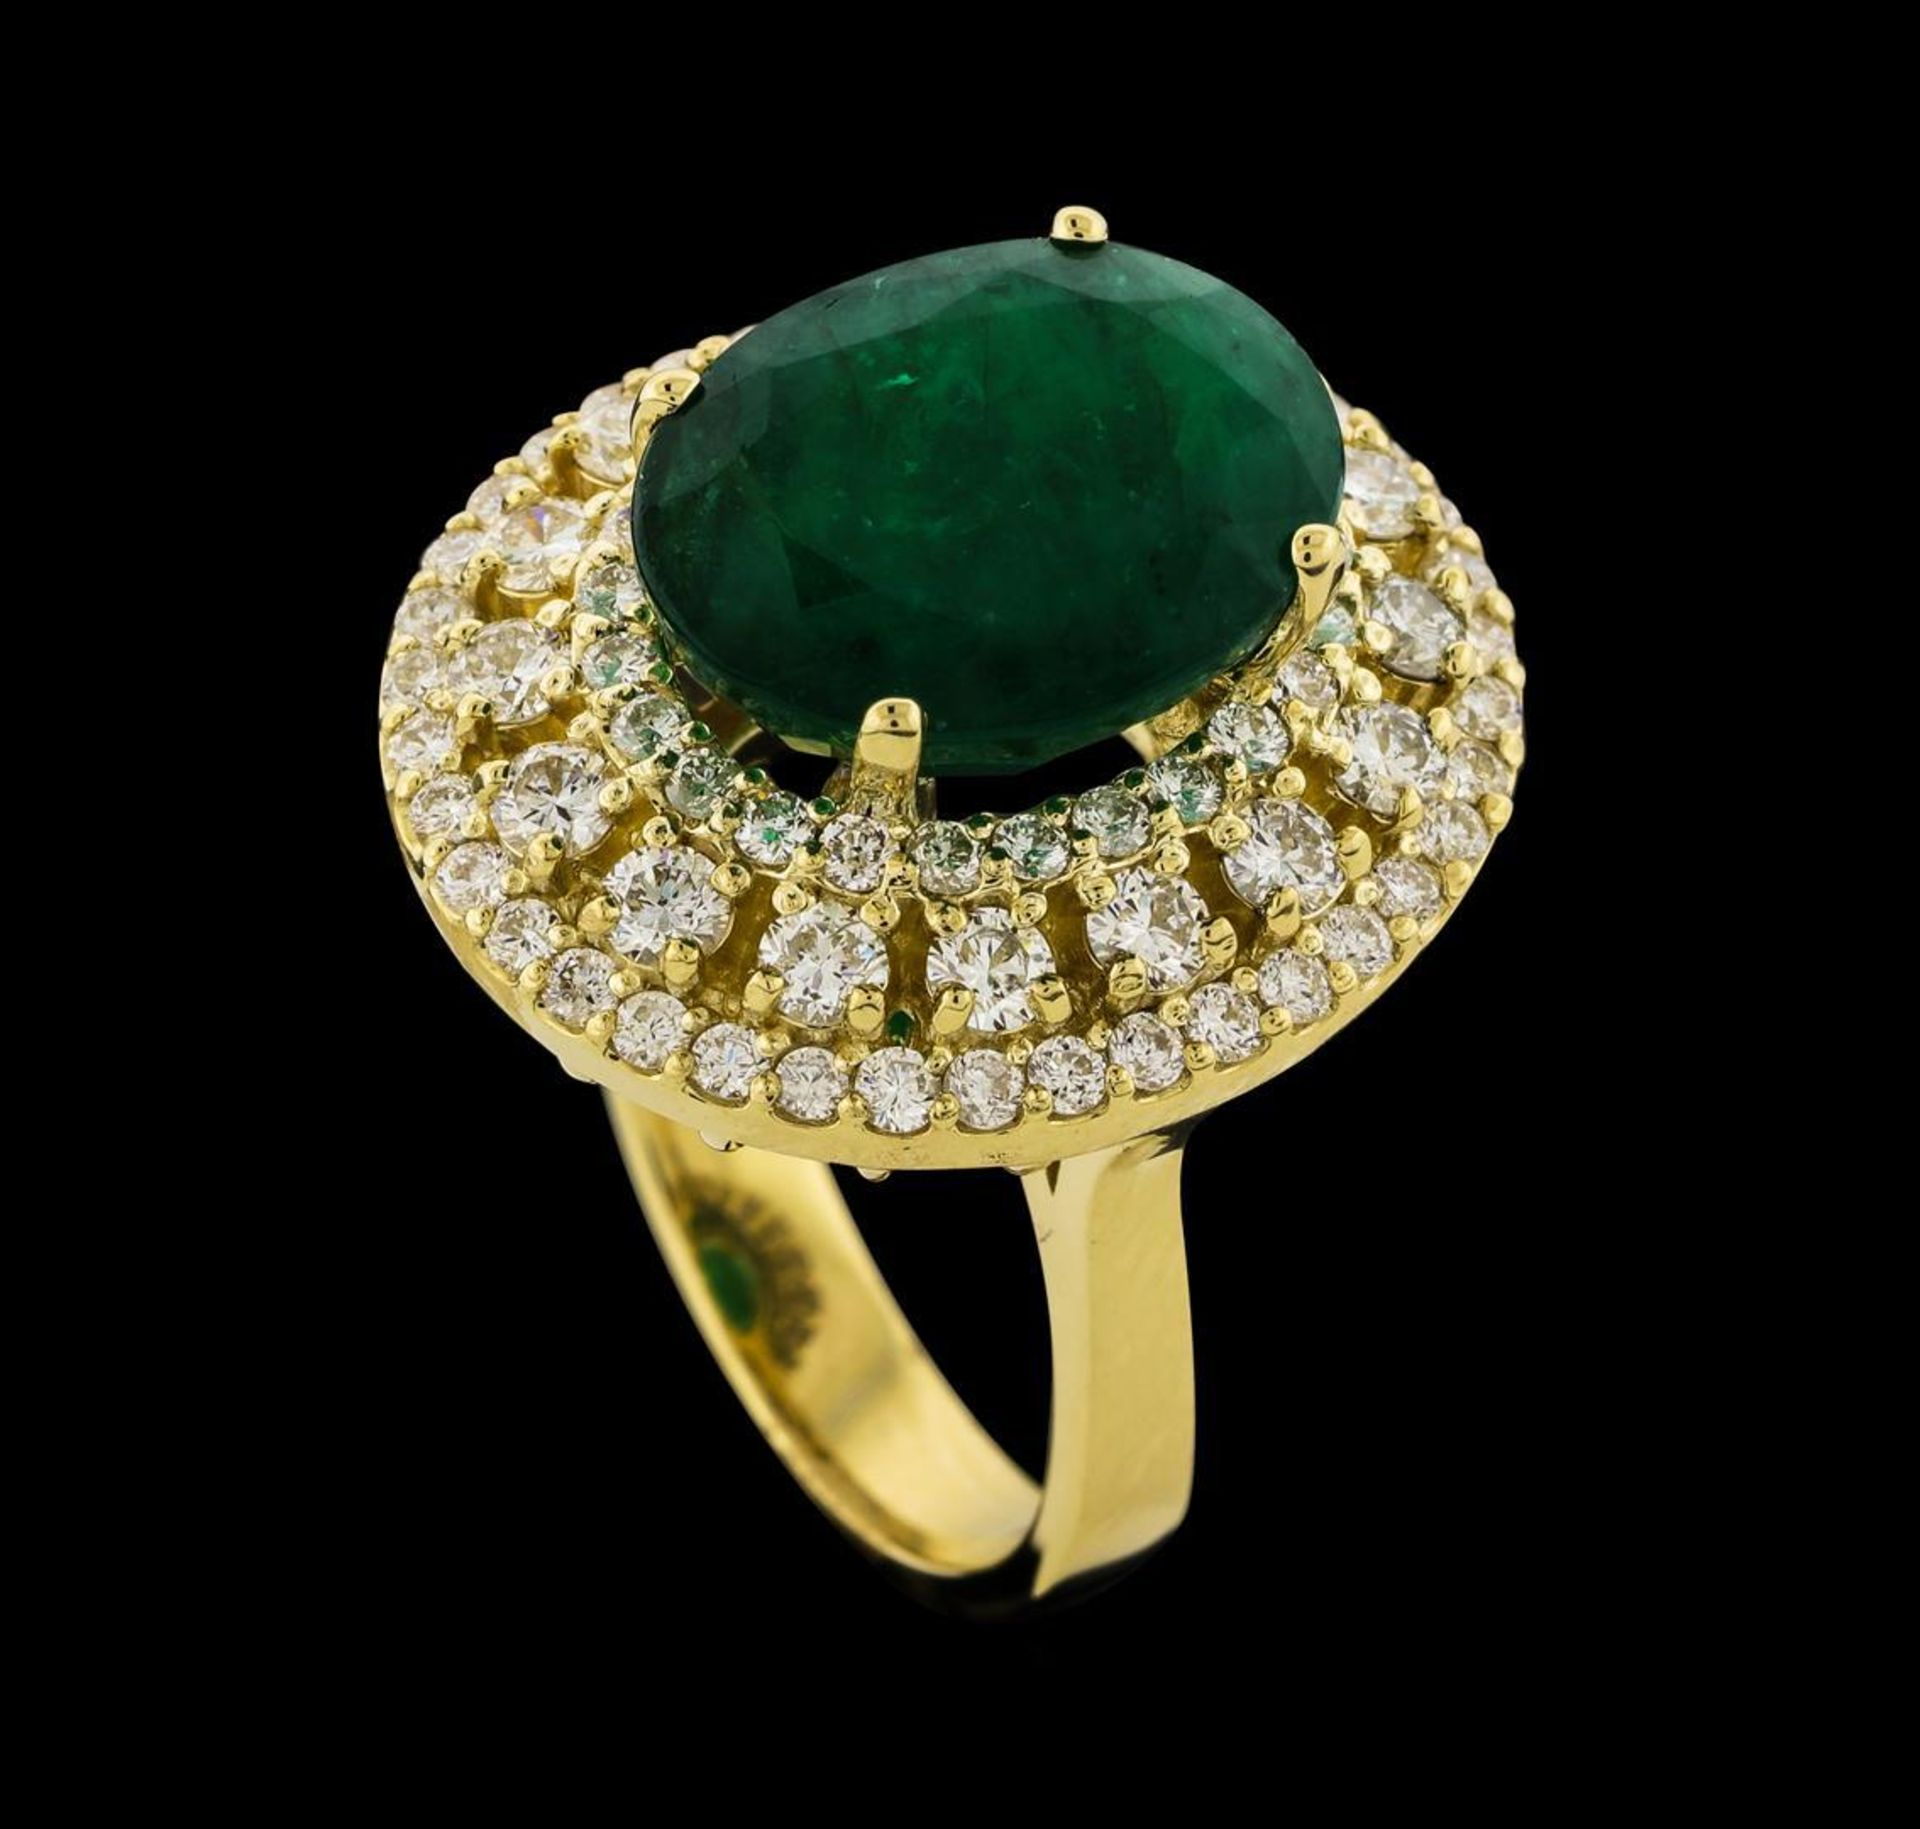 6.63 ctw Emerald and Diamond Ring - 14KT Yellow Gold - Image 4 of 5